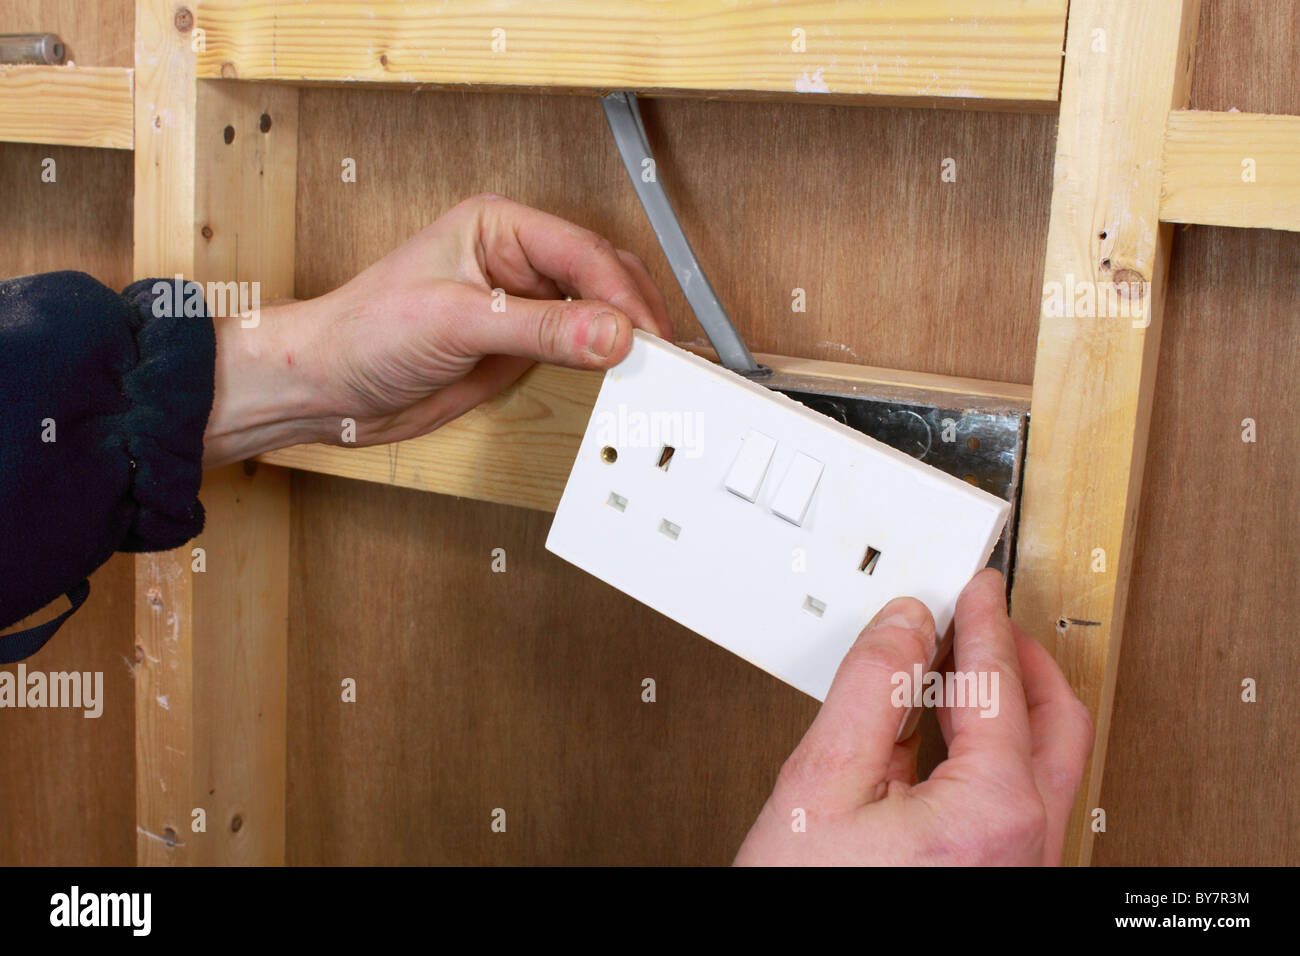 diy electrician installing mains wiring and electrical sockets in a rh alamy com diy electrical wiring diagrams diy electrical wiring diagrams